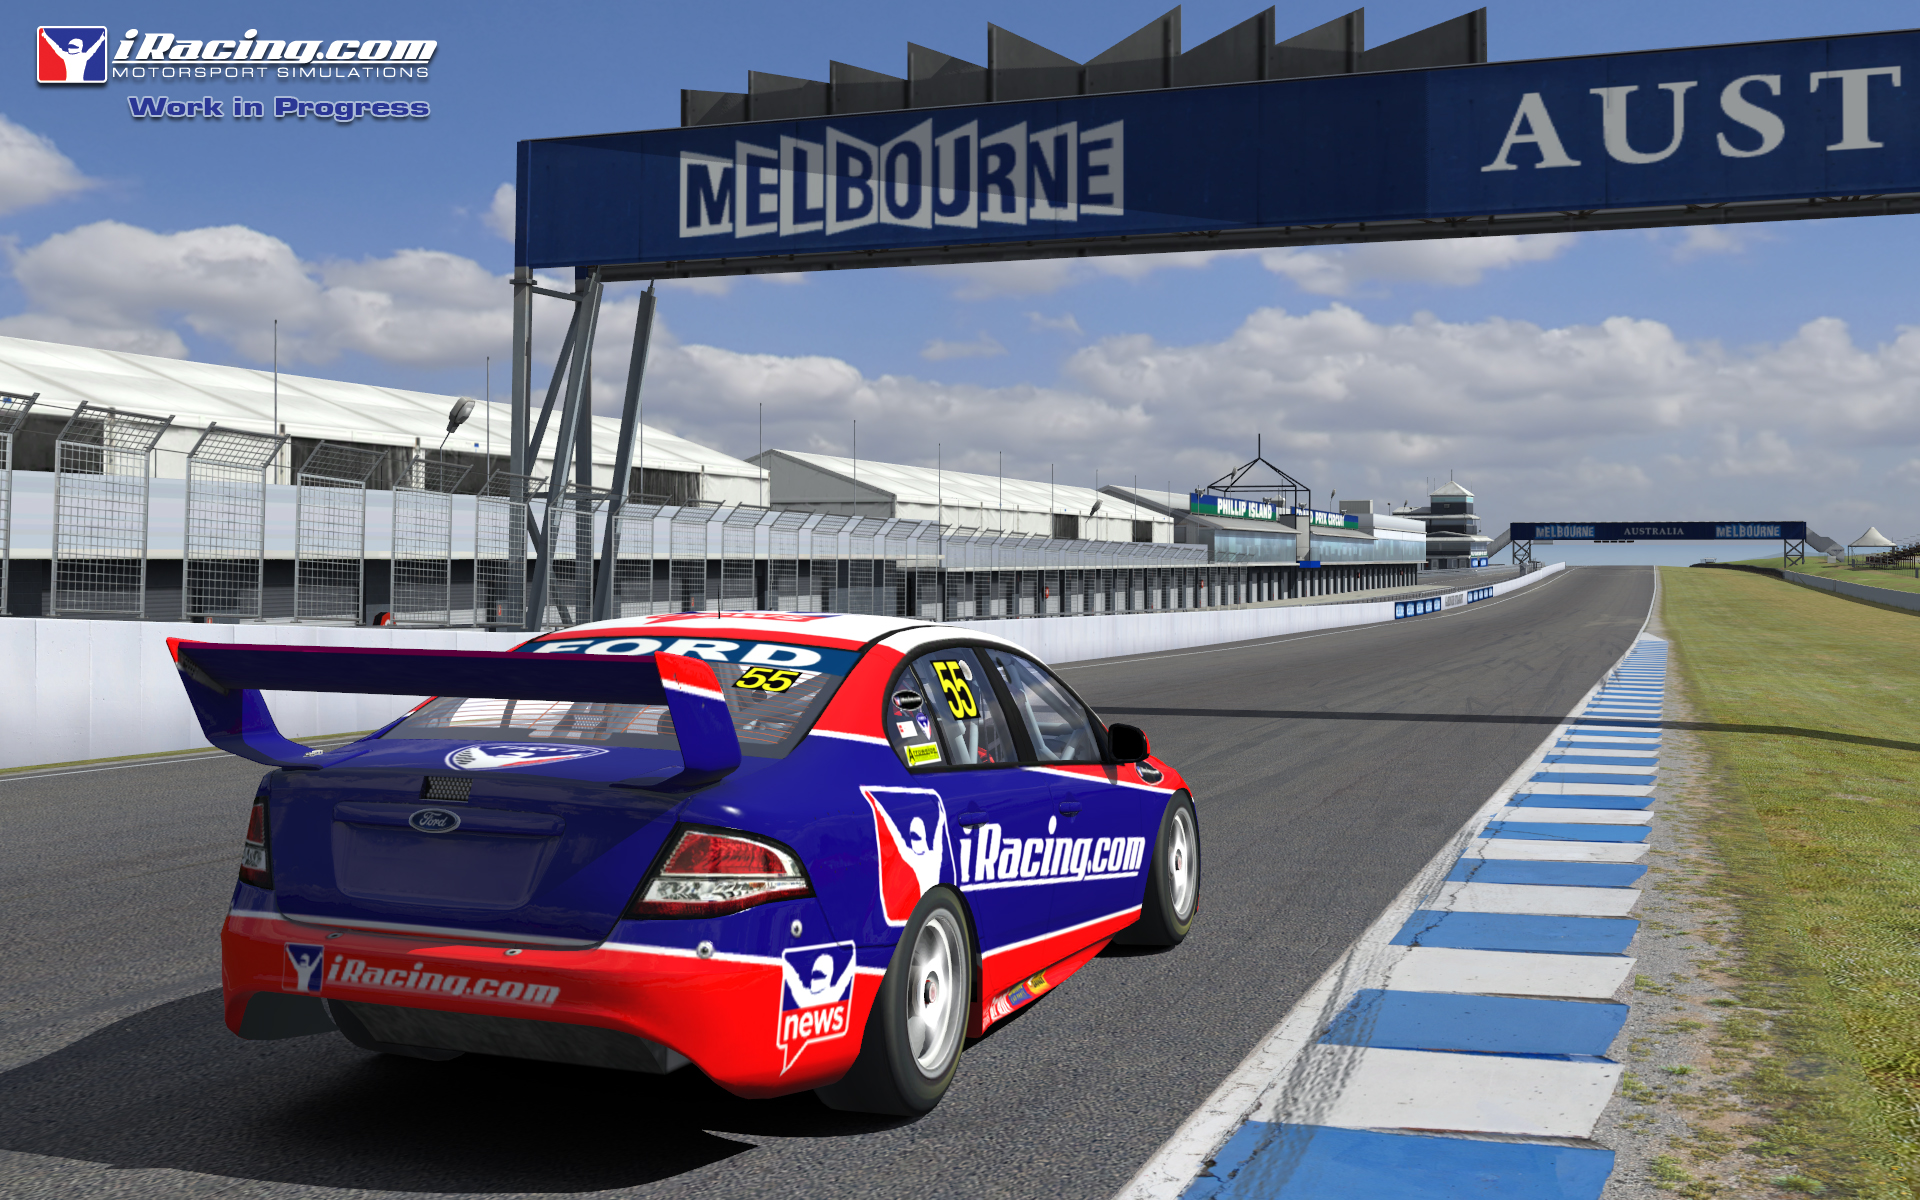 News Bits: Latest iRacing Update Adds DK2 Positional